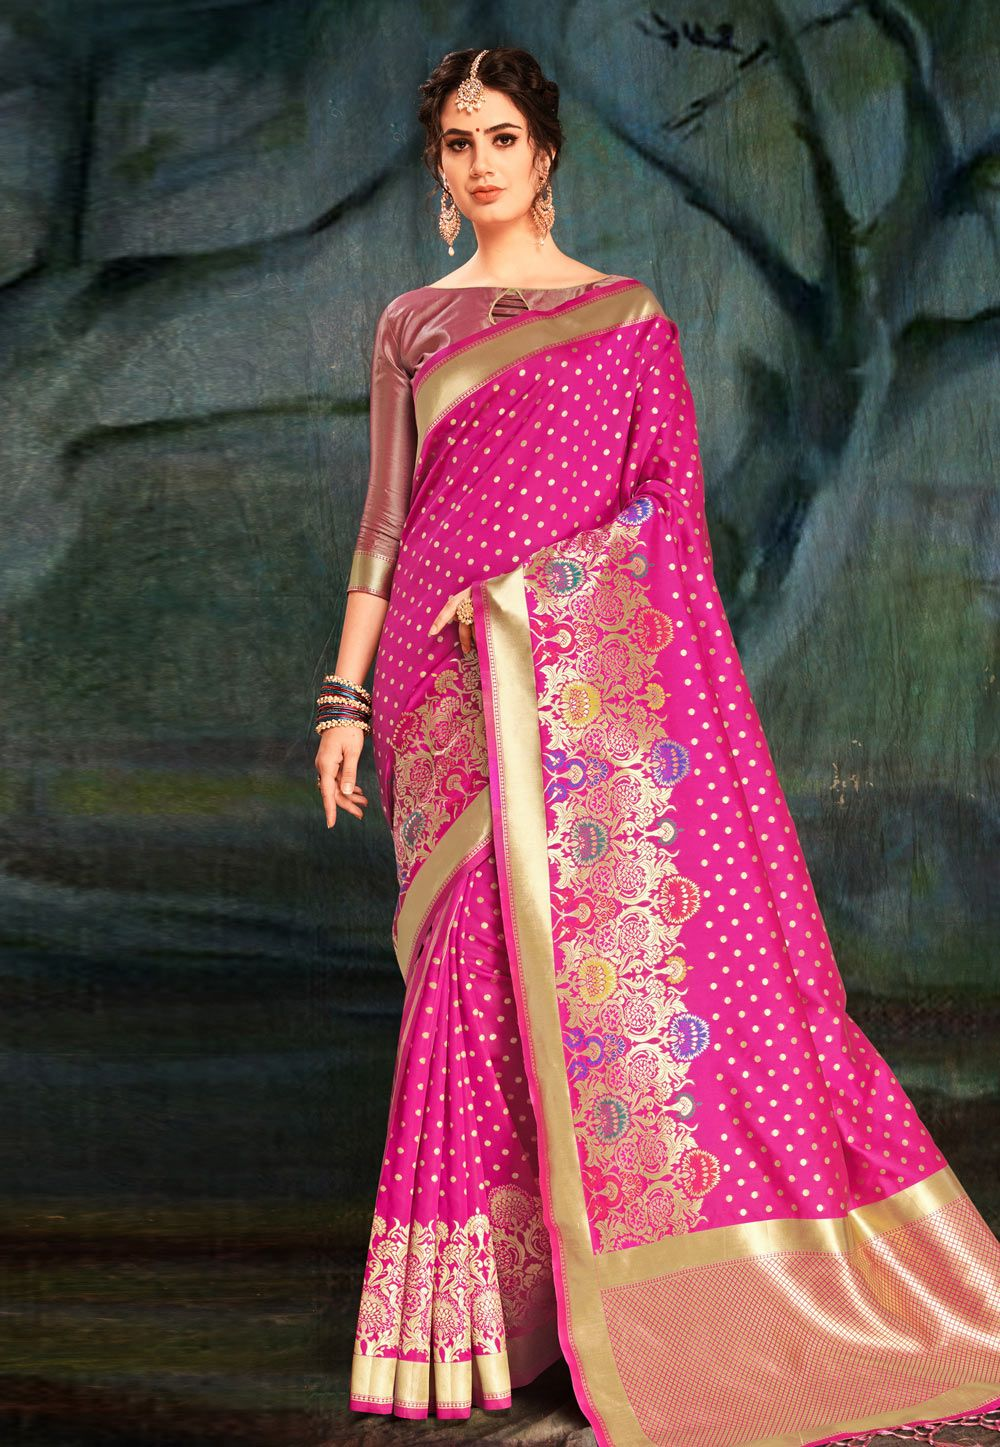 109e64836e26b3 Buy Magenta Banarasi Silk Festival Wear Saree 161650 with blouse online at  lowest price from vast collection of sarees at Indianclothstore.com.